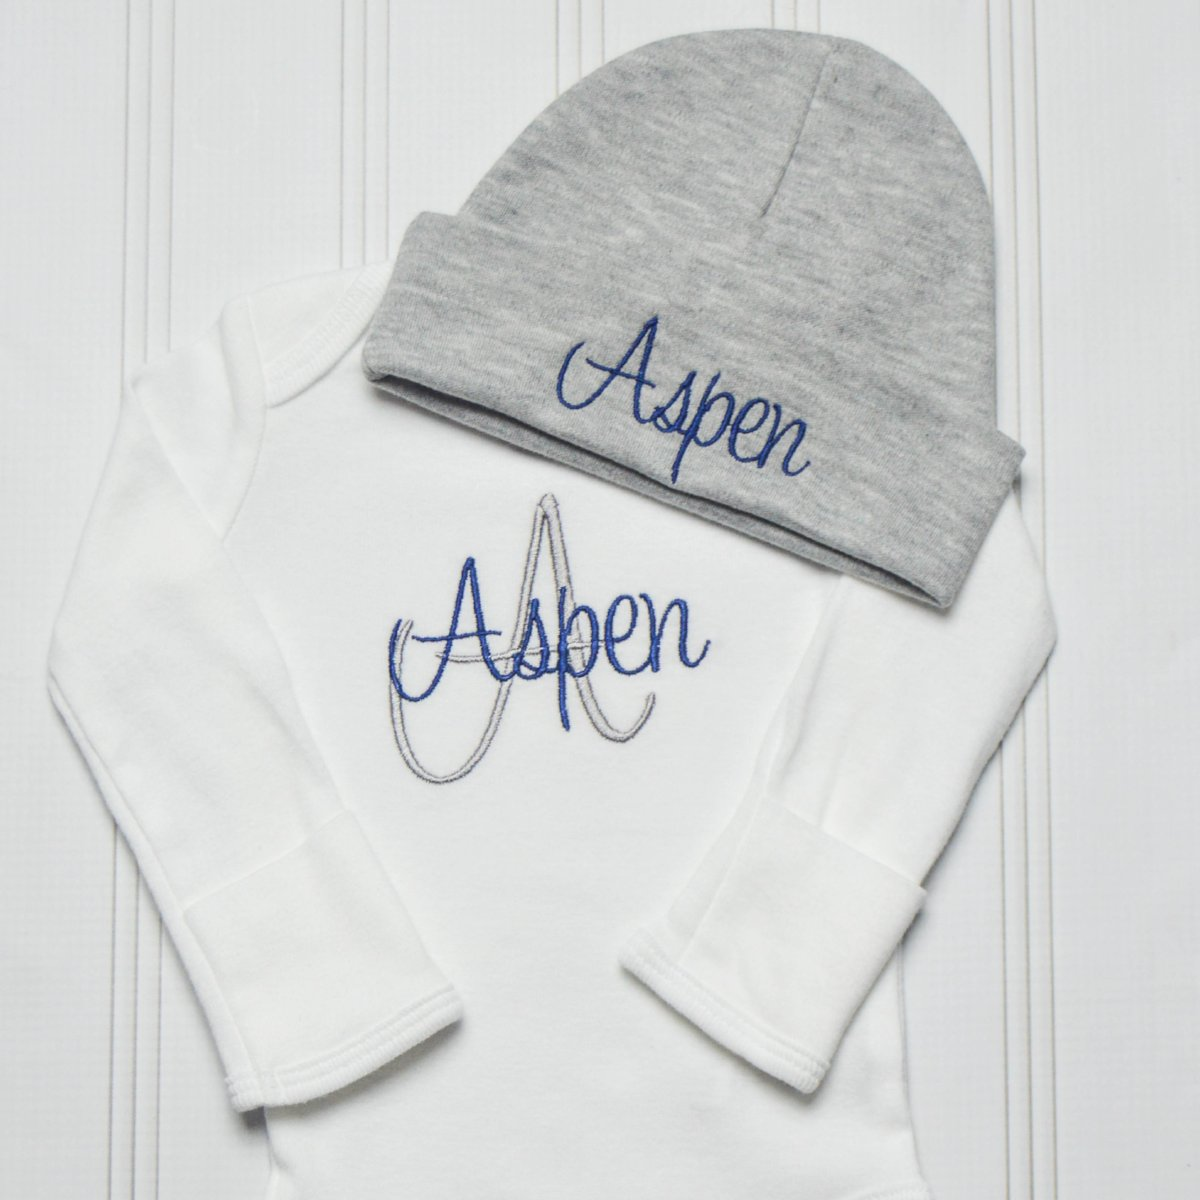 e3fd608fe4146 Aspen embroidered baby bodysuit with matching gray hat. Monogrammed Baby  Boy Coming Home Outfit ...